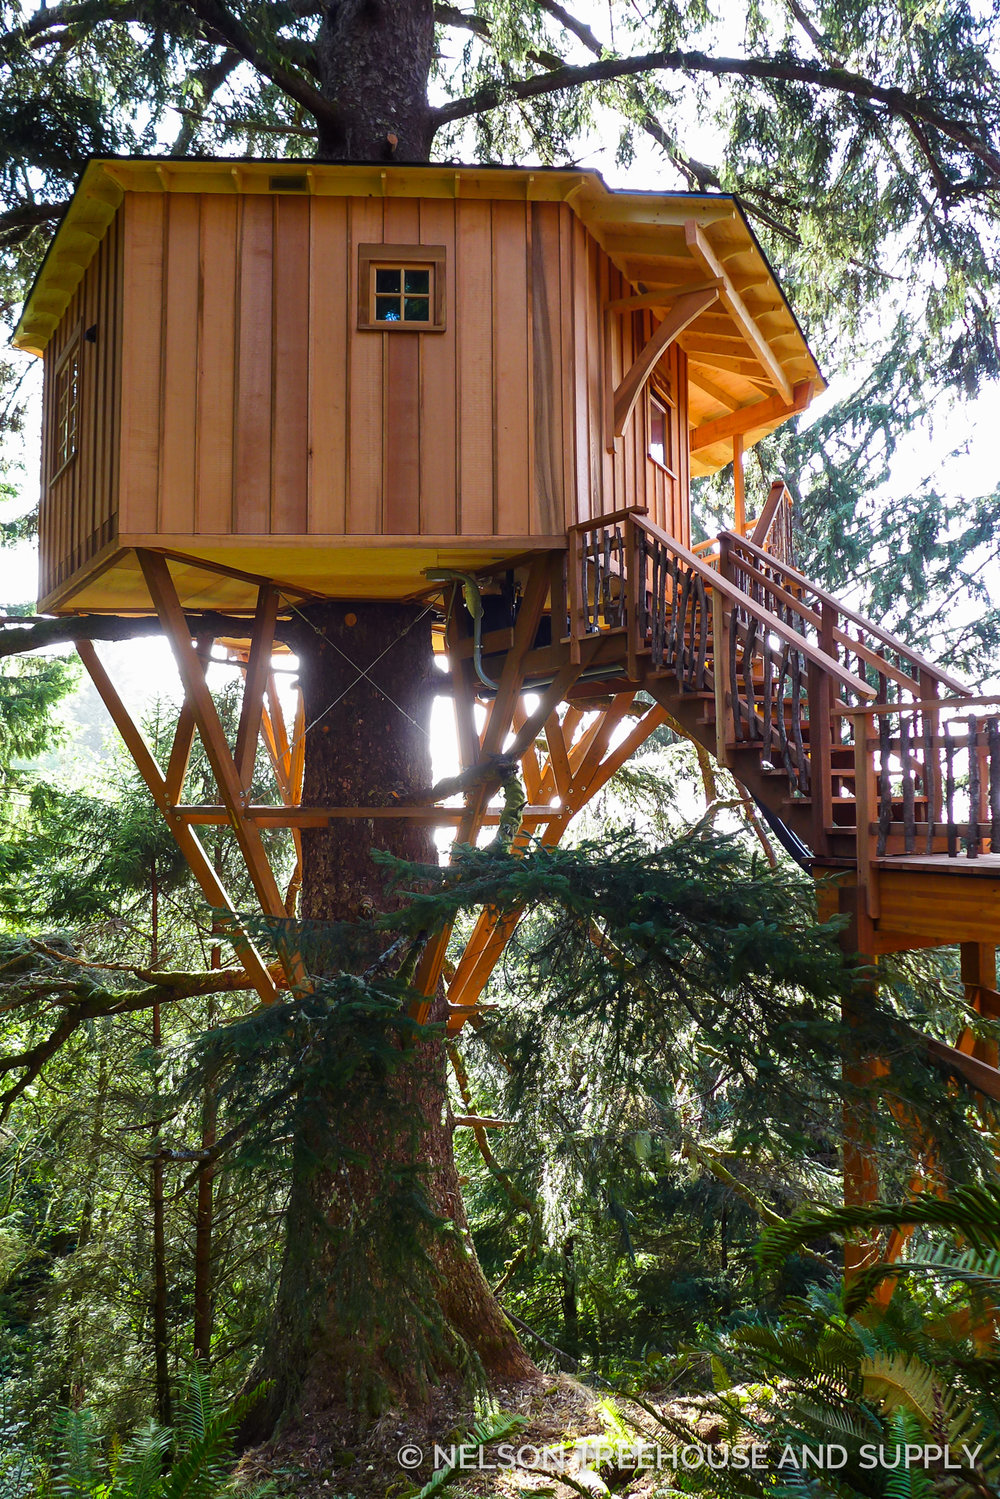 single spruce treehome nelson treehouse